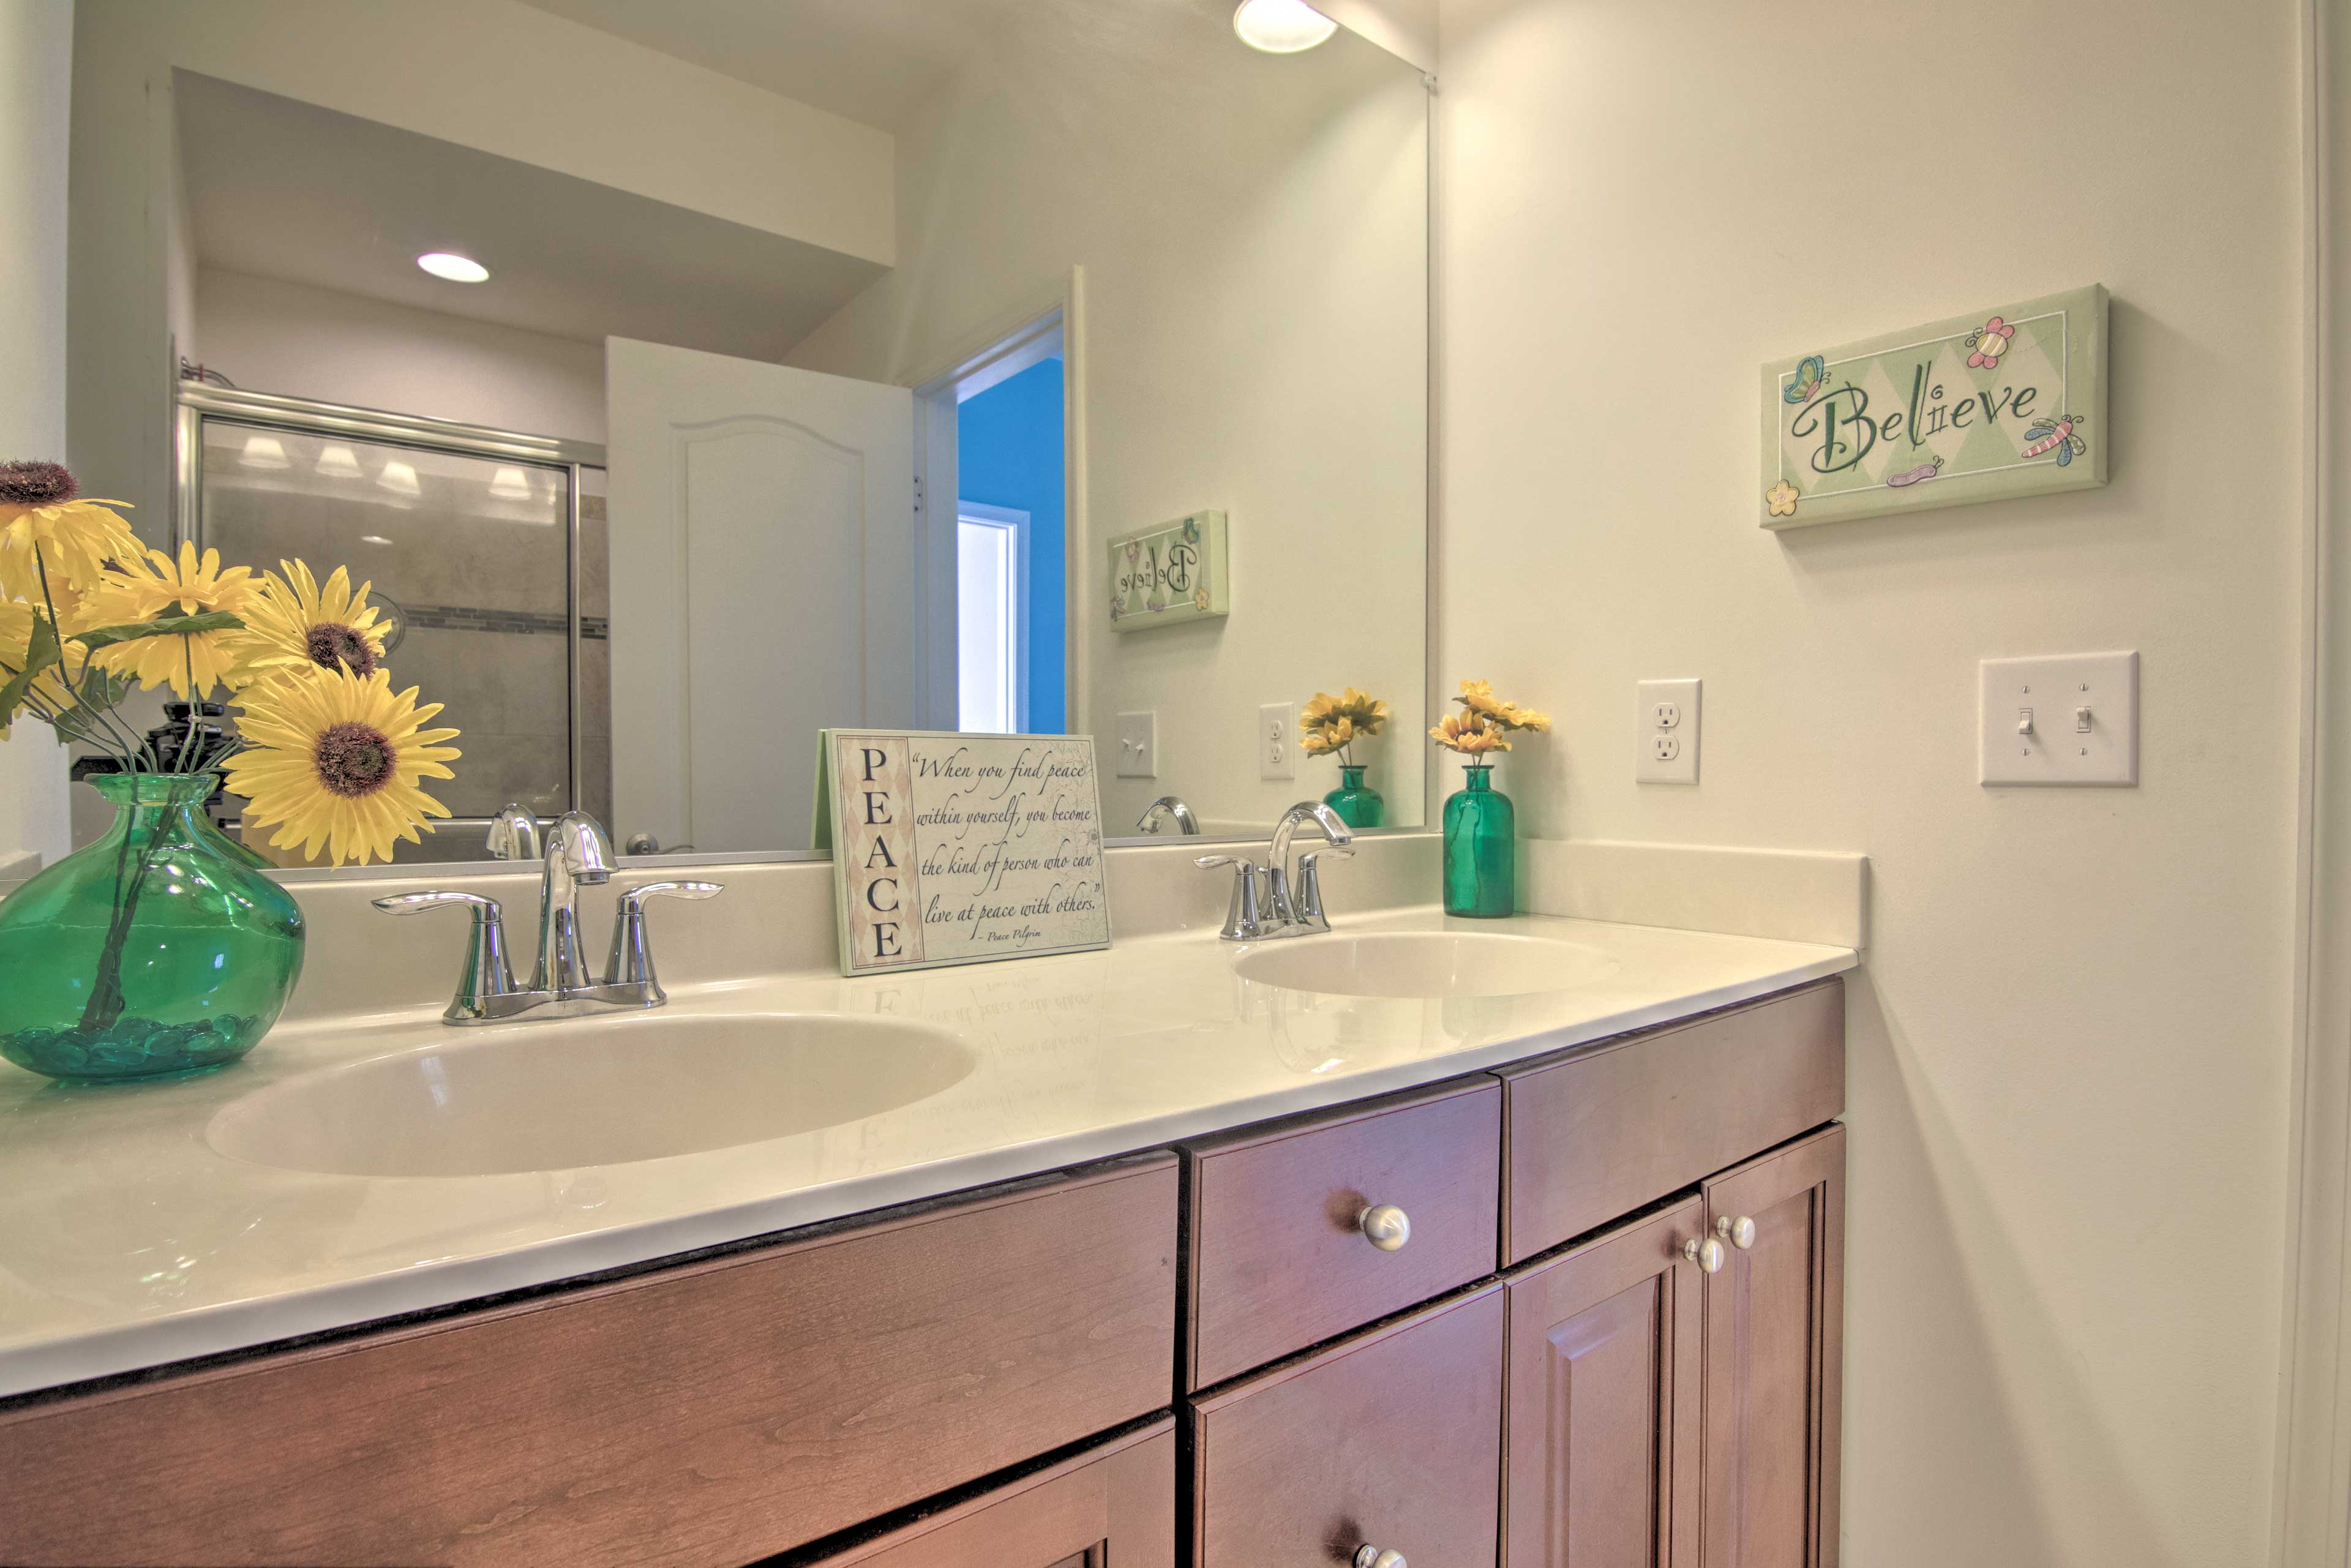 The en-suite master bathroom features Jack-and-Jill sinks.